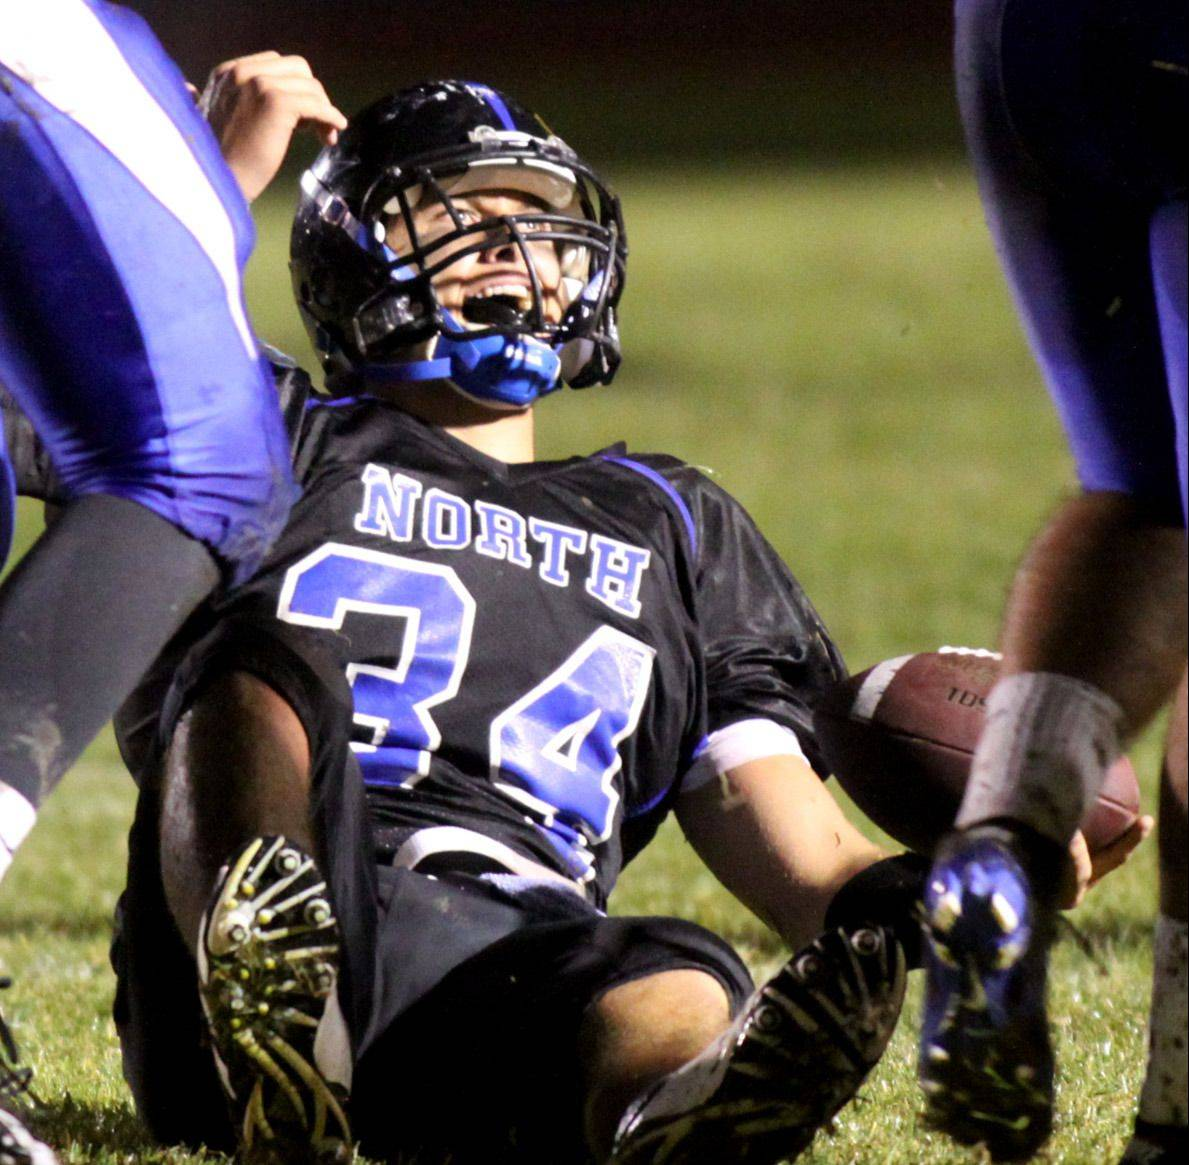 Evan Kurtz will be one of the players to watch next fall writes Craig Brueske. Like the rest of his St. Charles North teammates, Kurtz will be playing for a new coach.